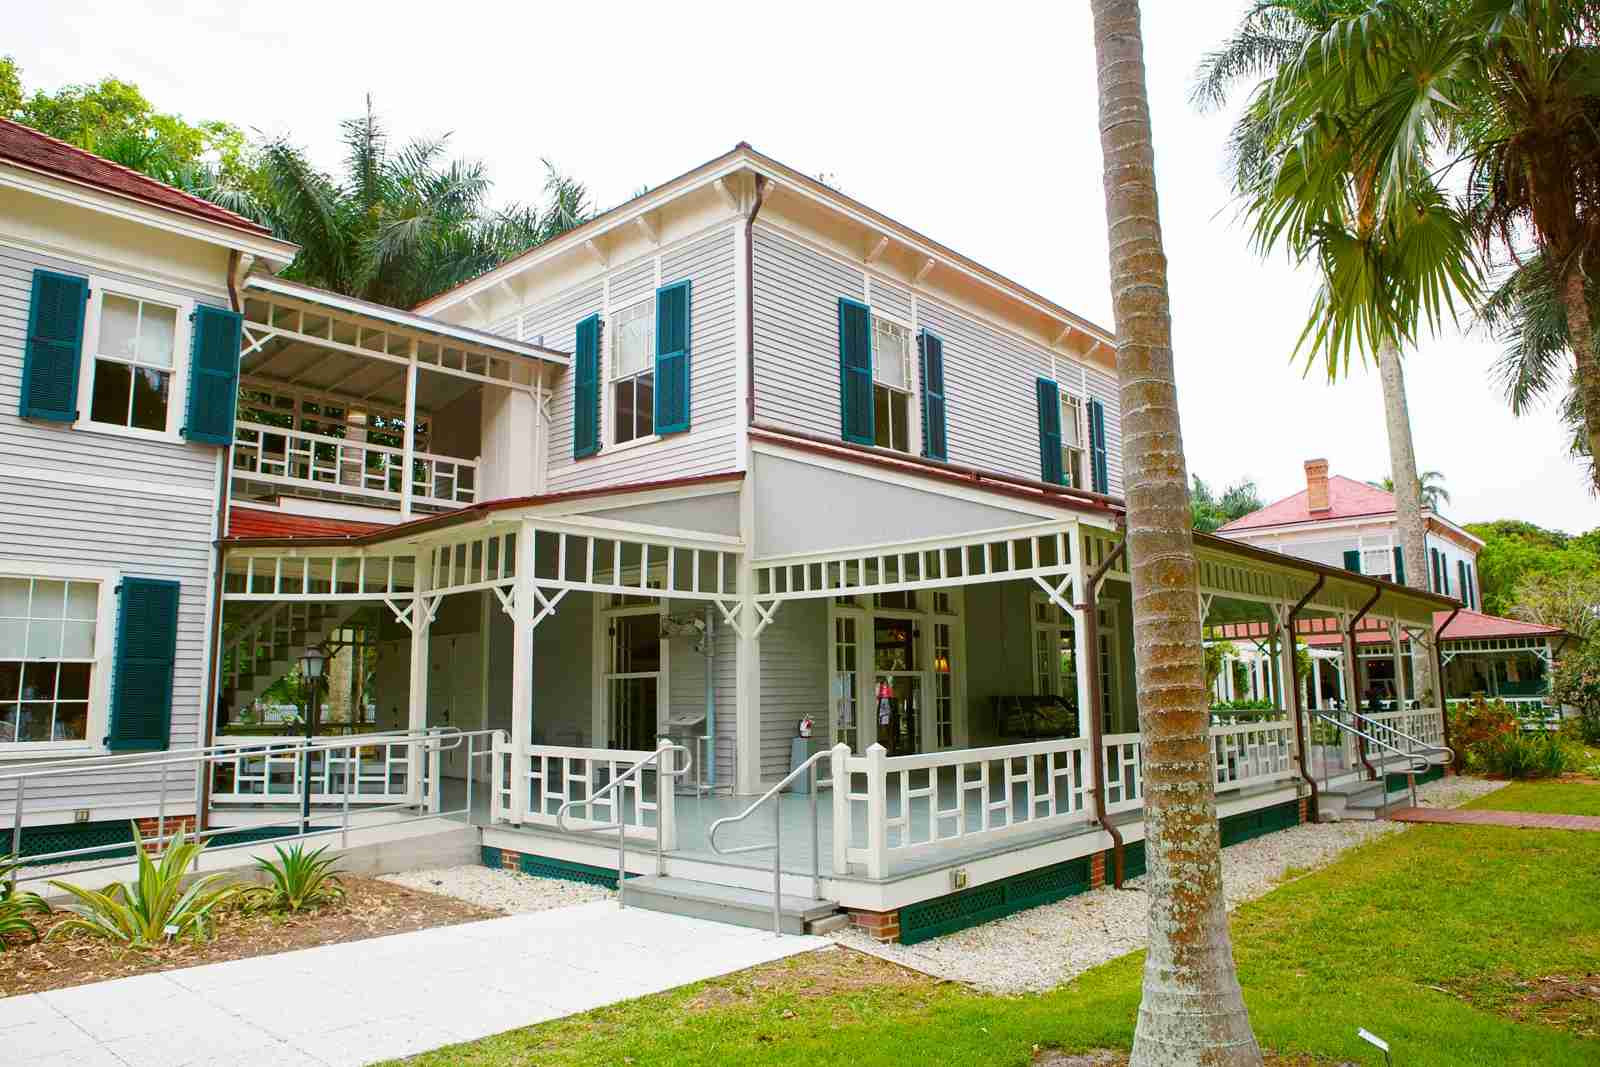 Edison and Ford Winter Estates. (Photo by Romrodphoto / Shutterstock)